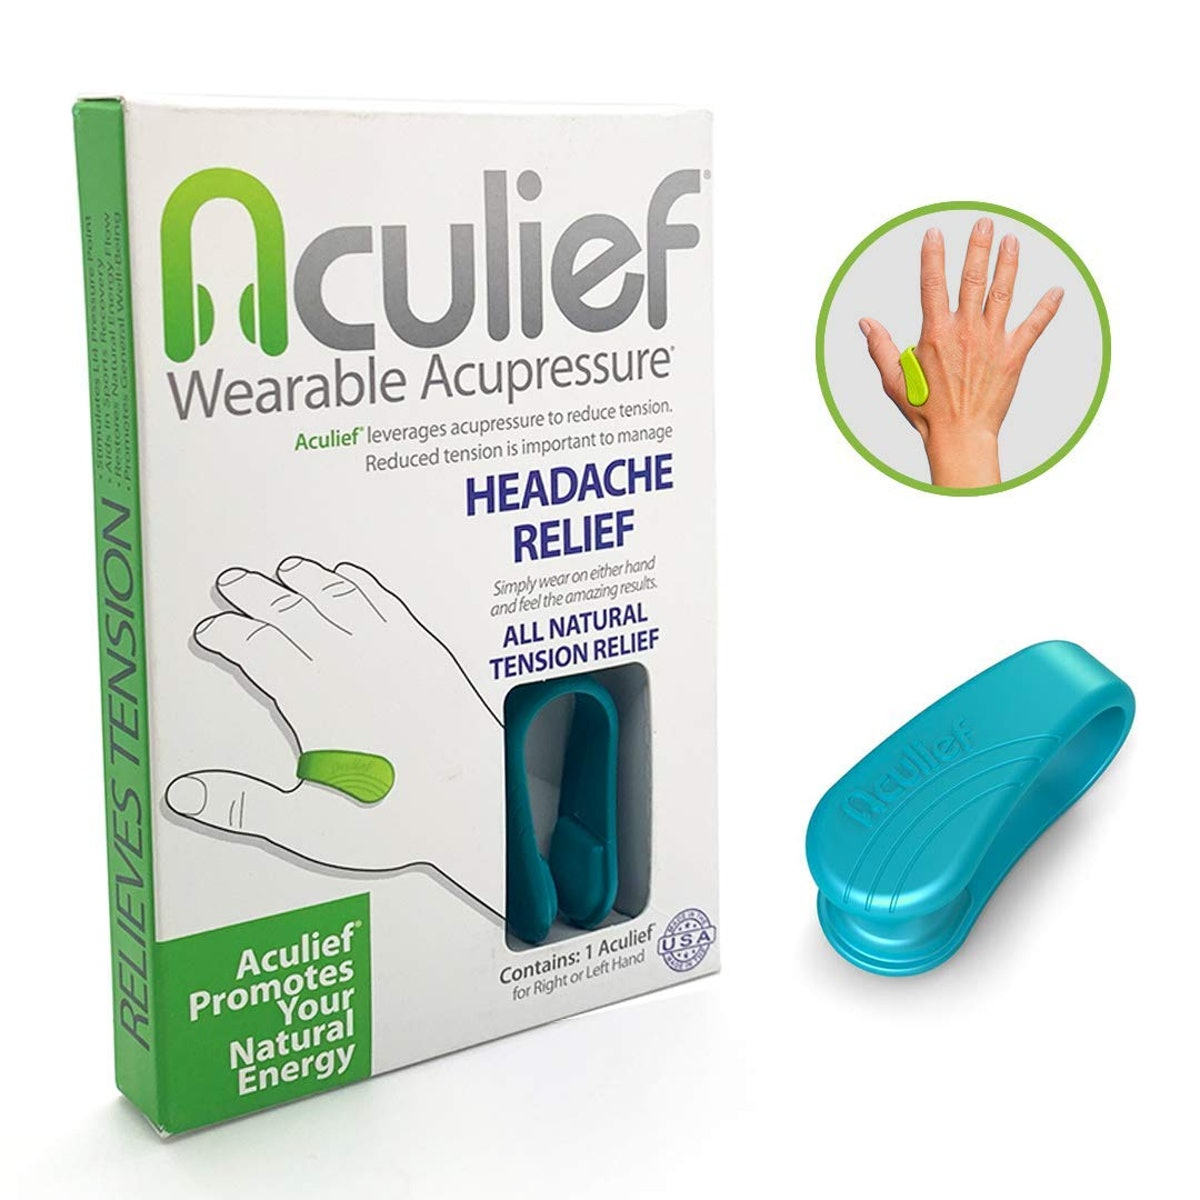 Headache, Migraine and Tension Relief - Wearable Acupressure